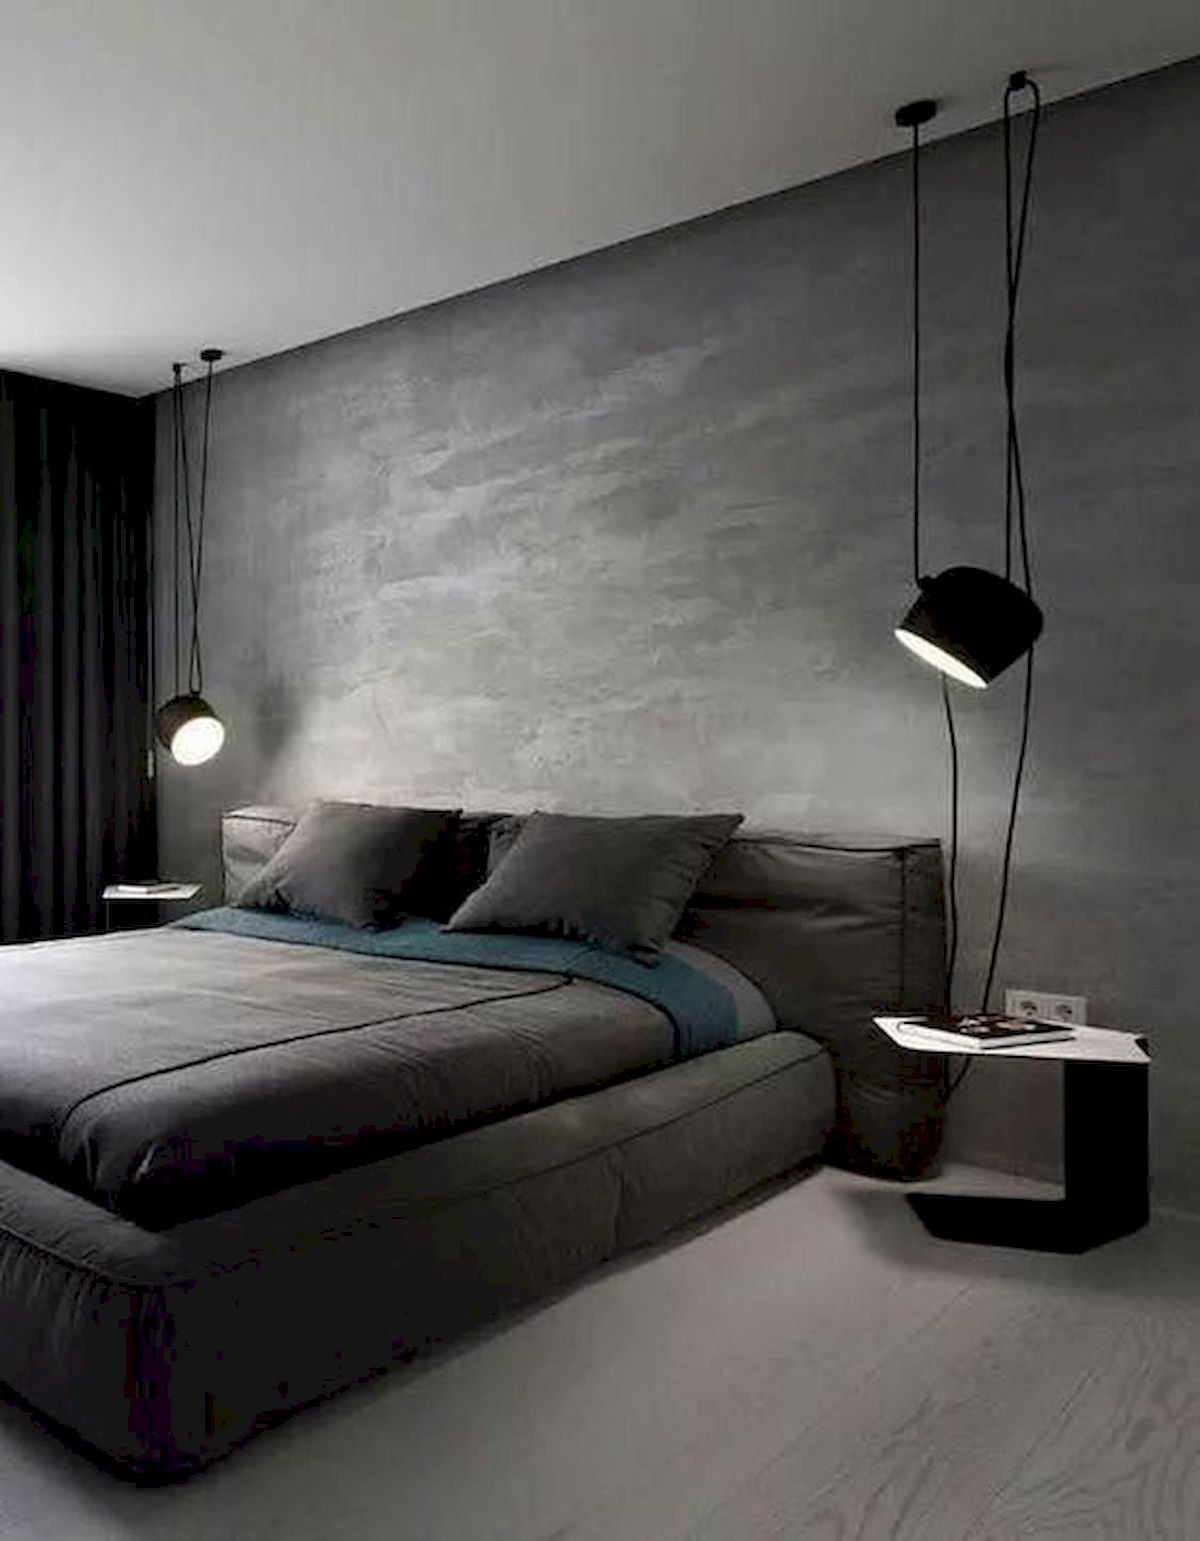 40 Incredible Modern Bedroom Design Ideas That Will Be Relax Place (10)